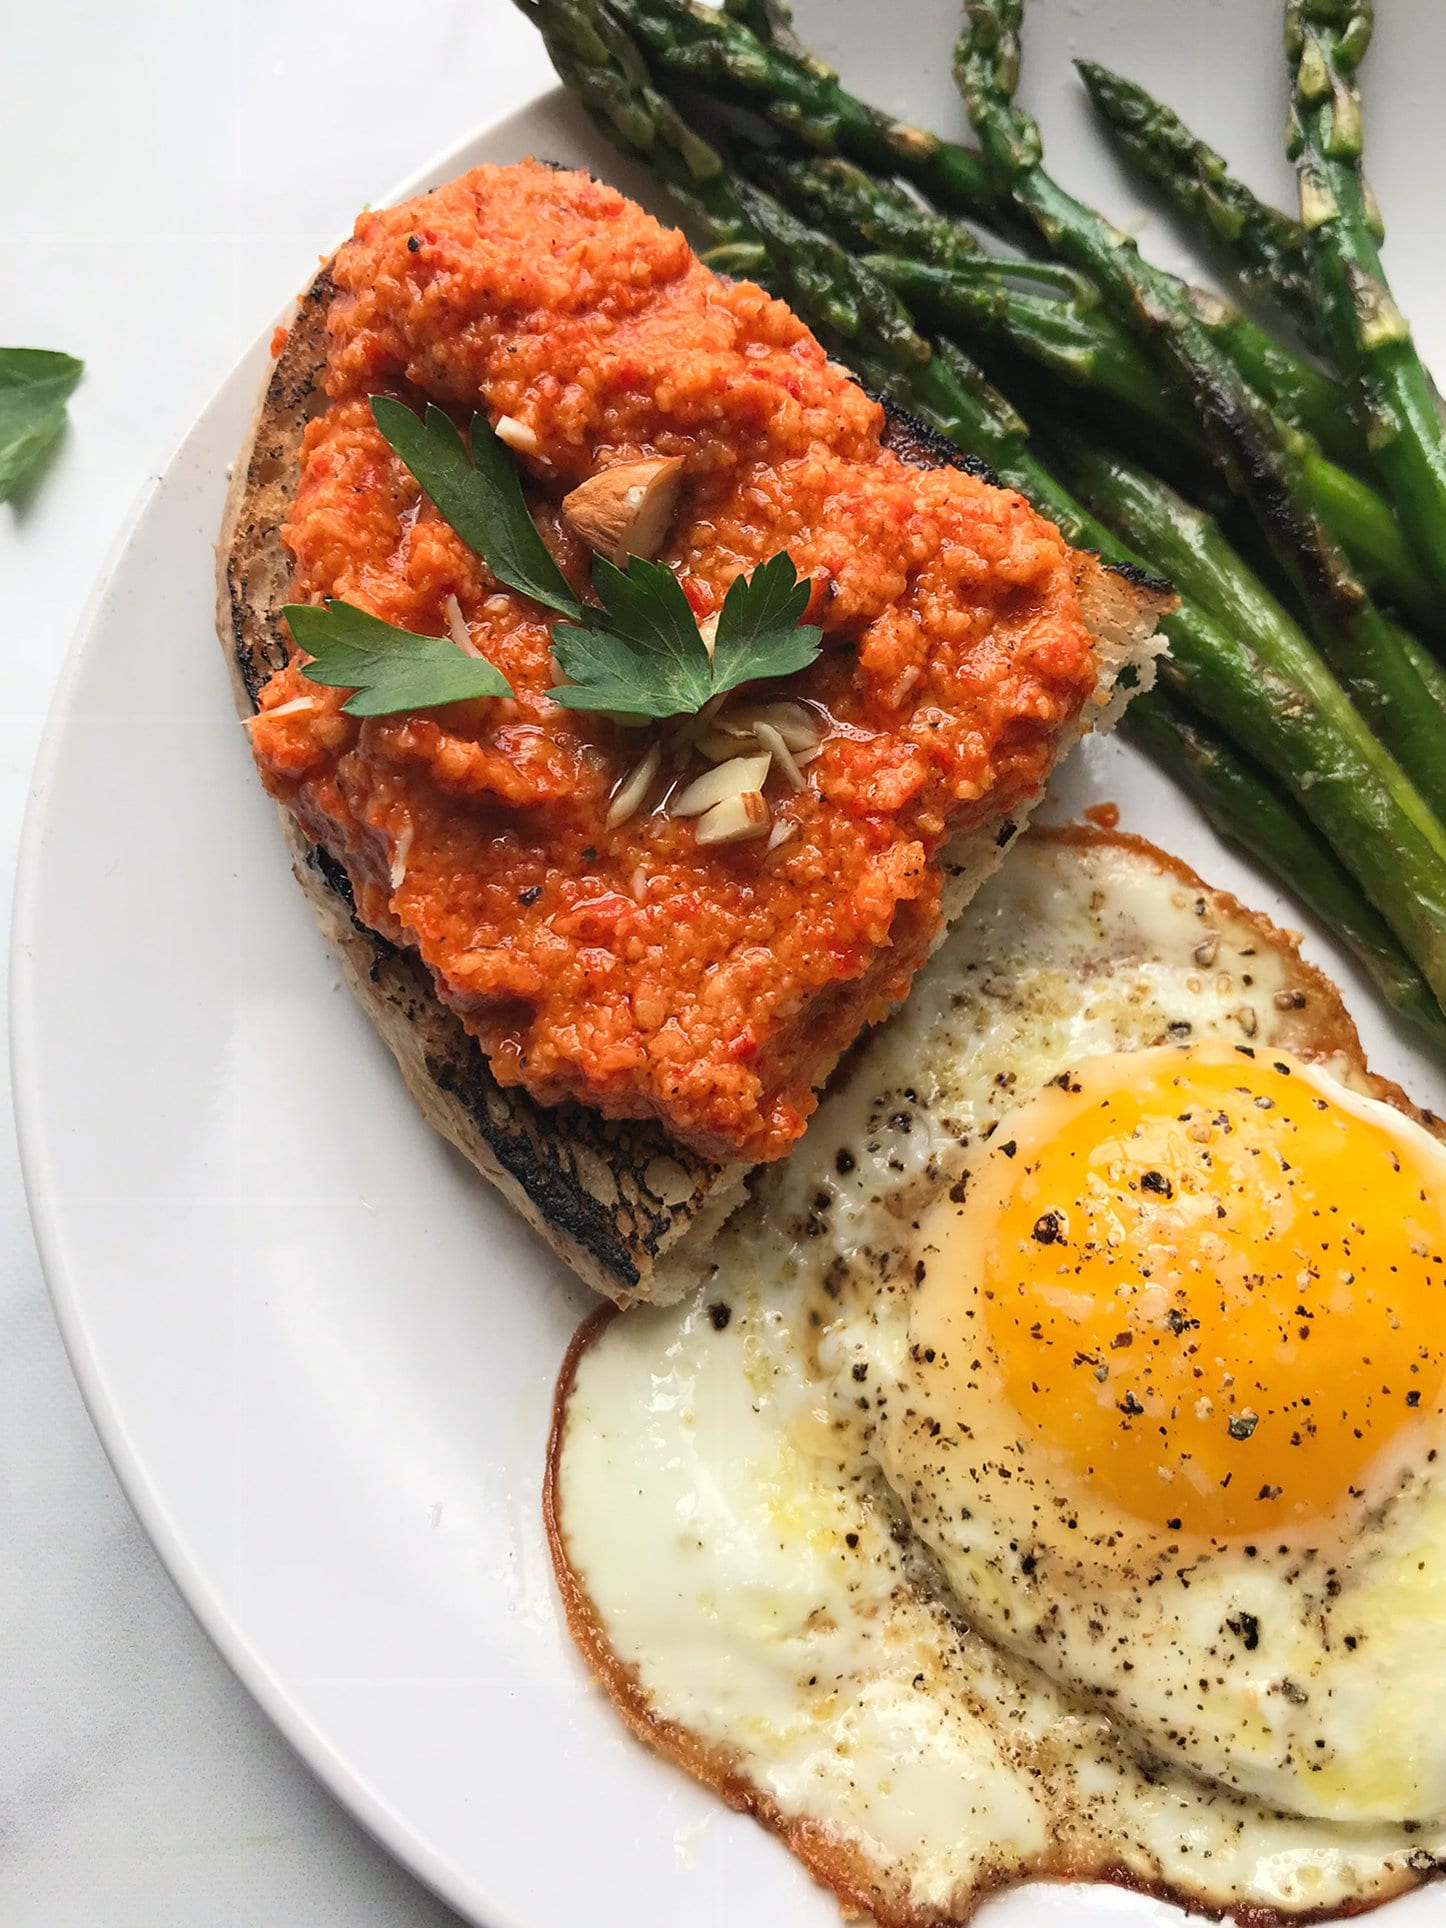 Romesco sauce on toast with egg and asparagus